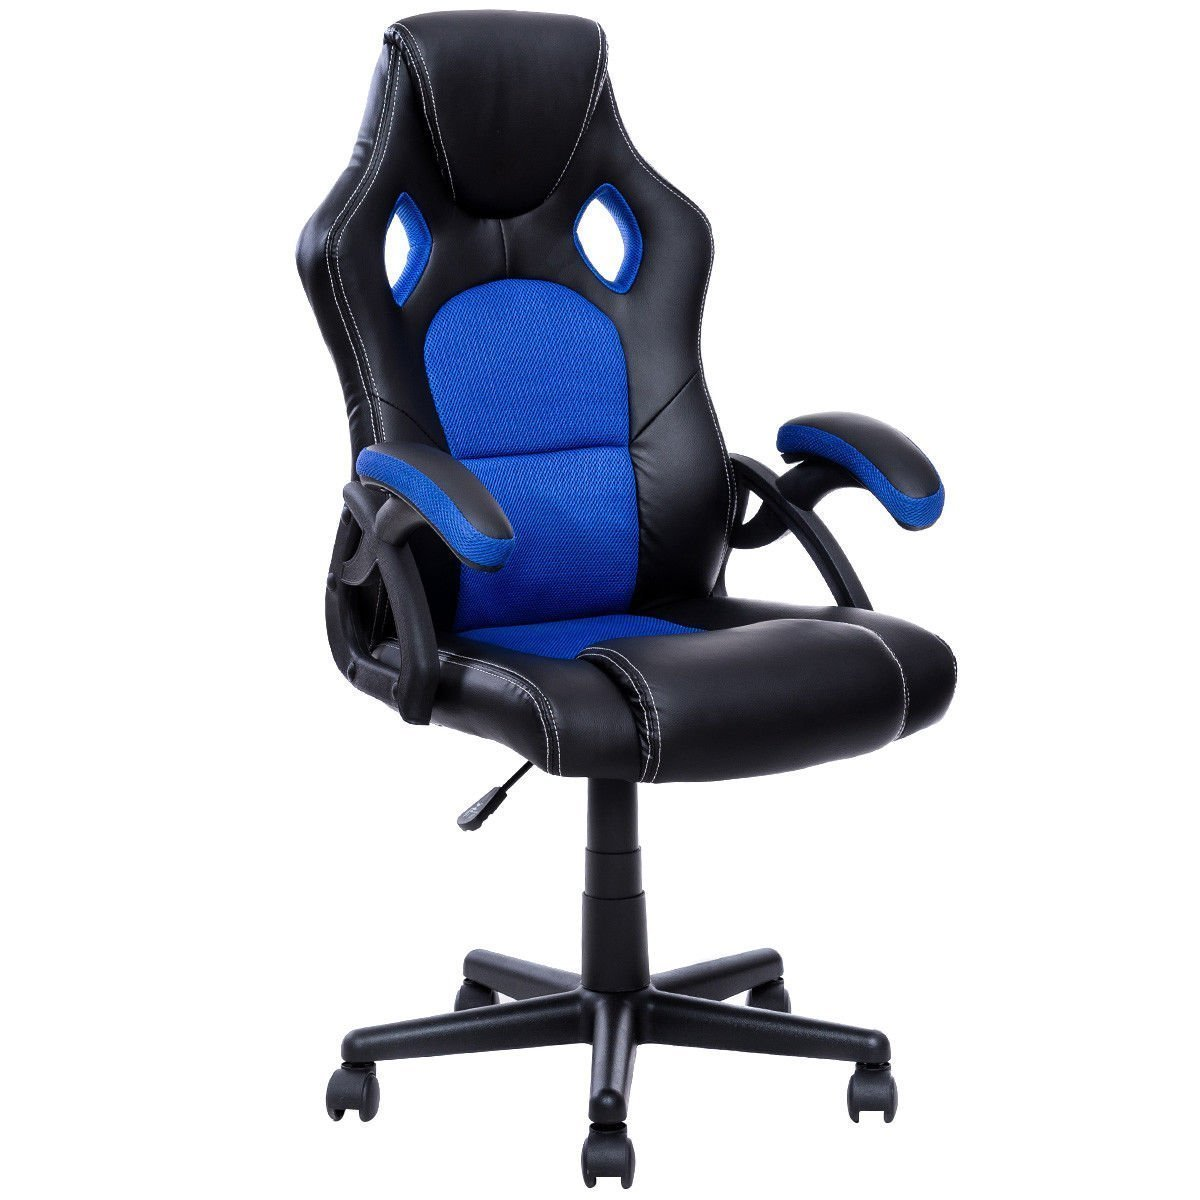 office chair seat covers black steel joints giantex pu leather executive bucket racing style